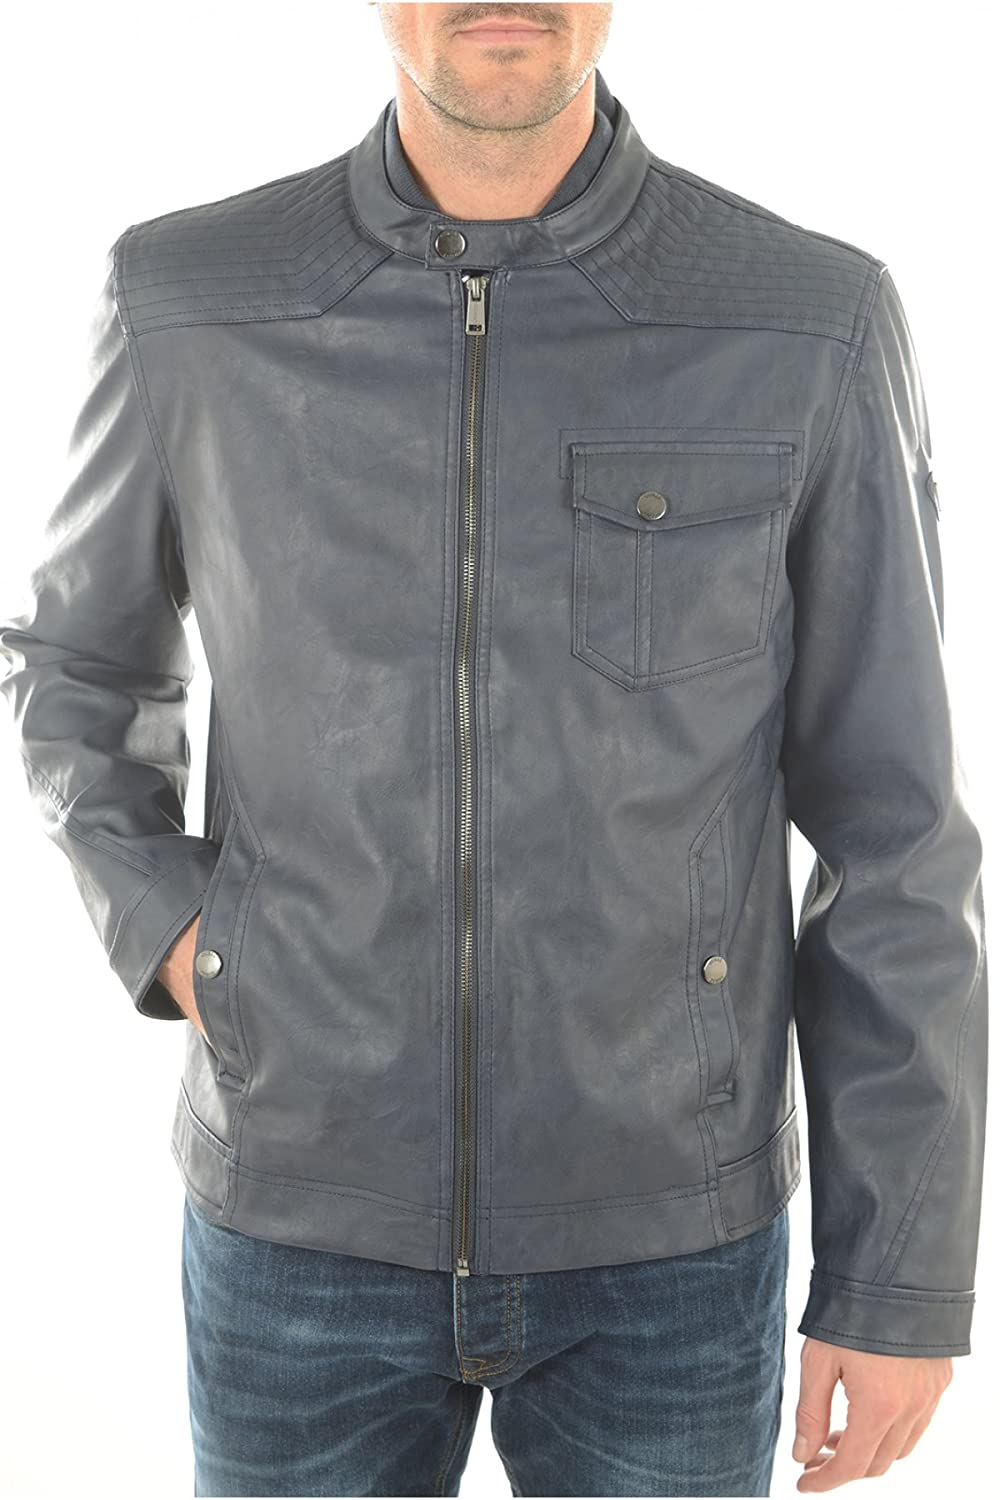 Guess Men's Jacket blue blue